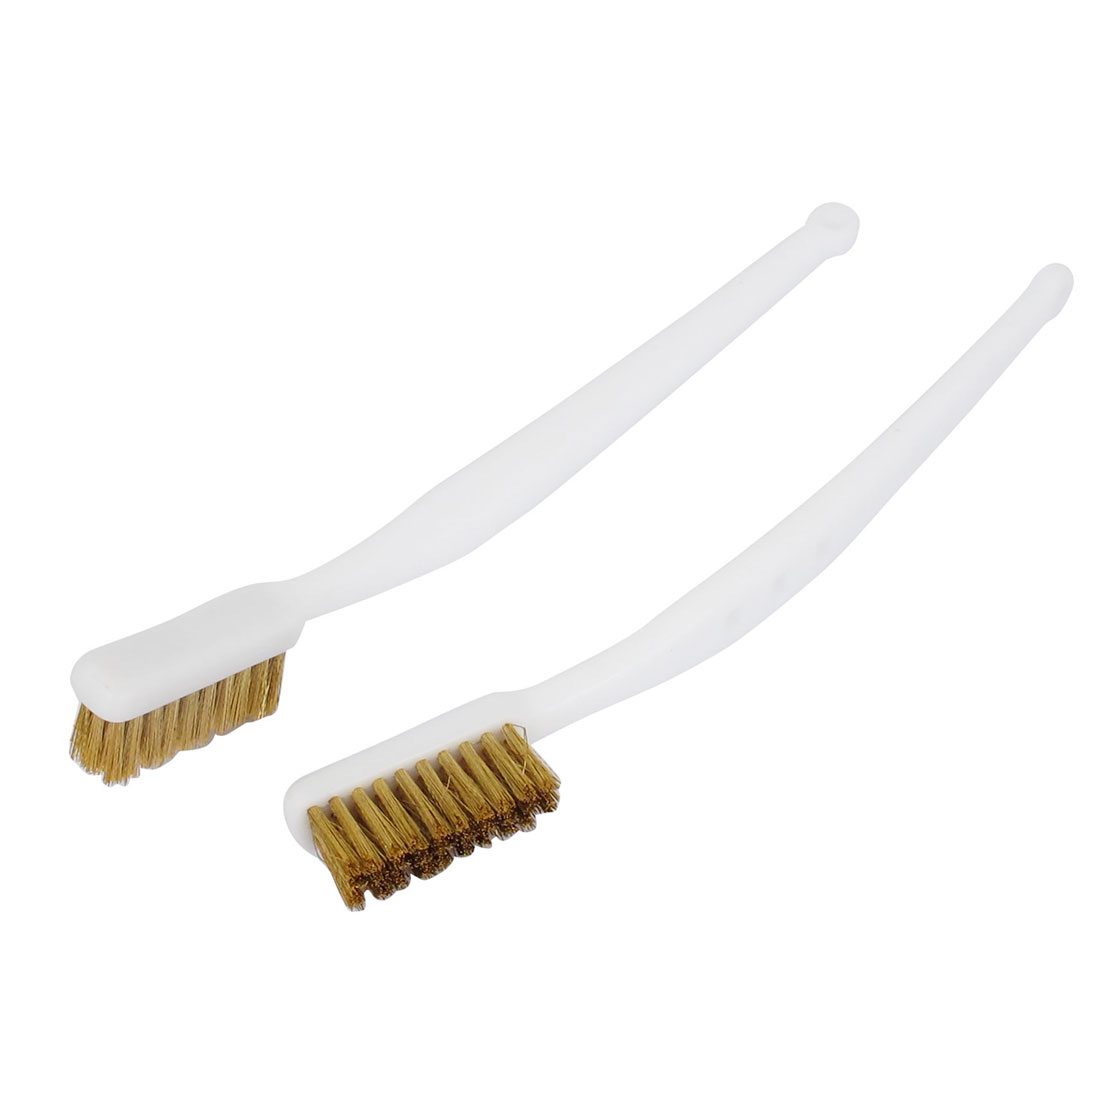 18cm Length Handy Tool Plastic Handle Brass Wire Cleaning Brush White 2 Pcs